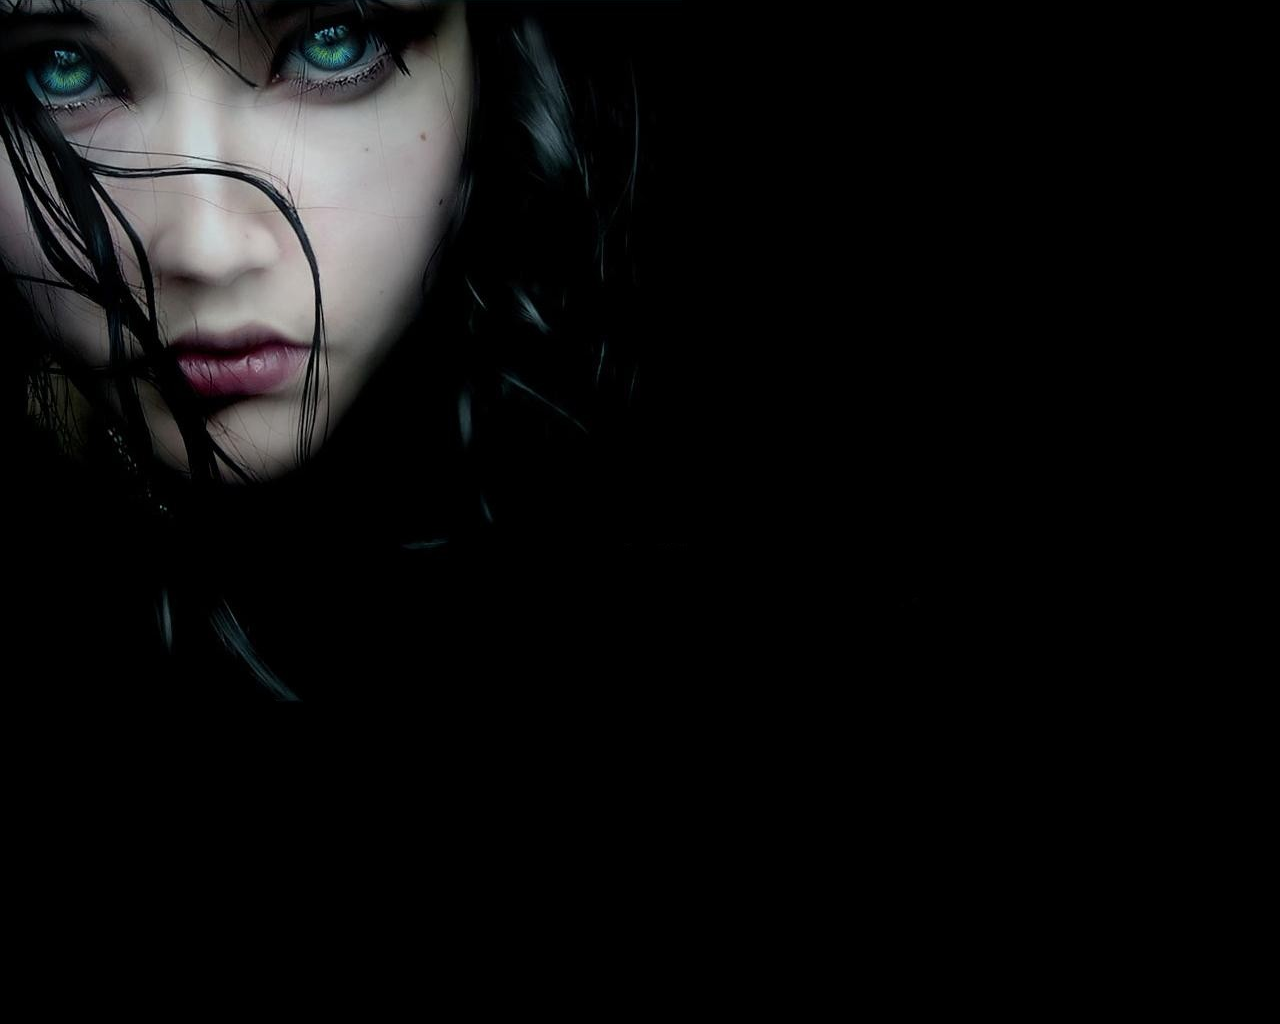 Black Woman Face Sad Wallpaper eyes sad 1280x1024